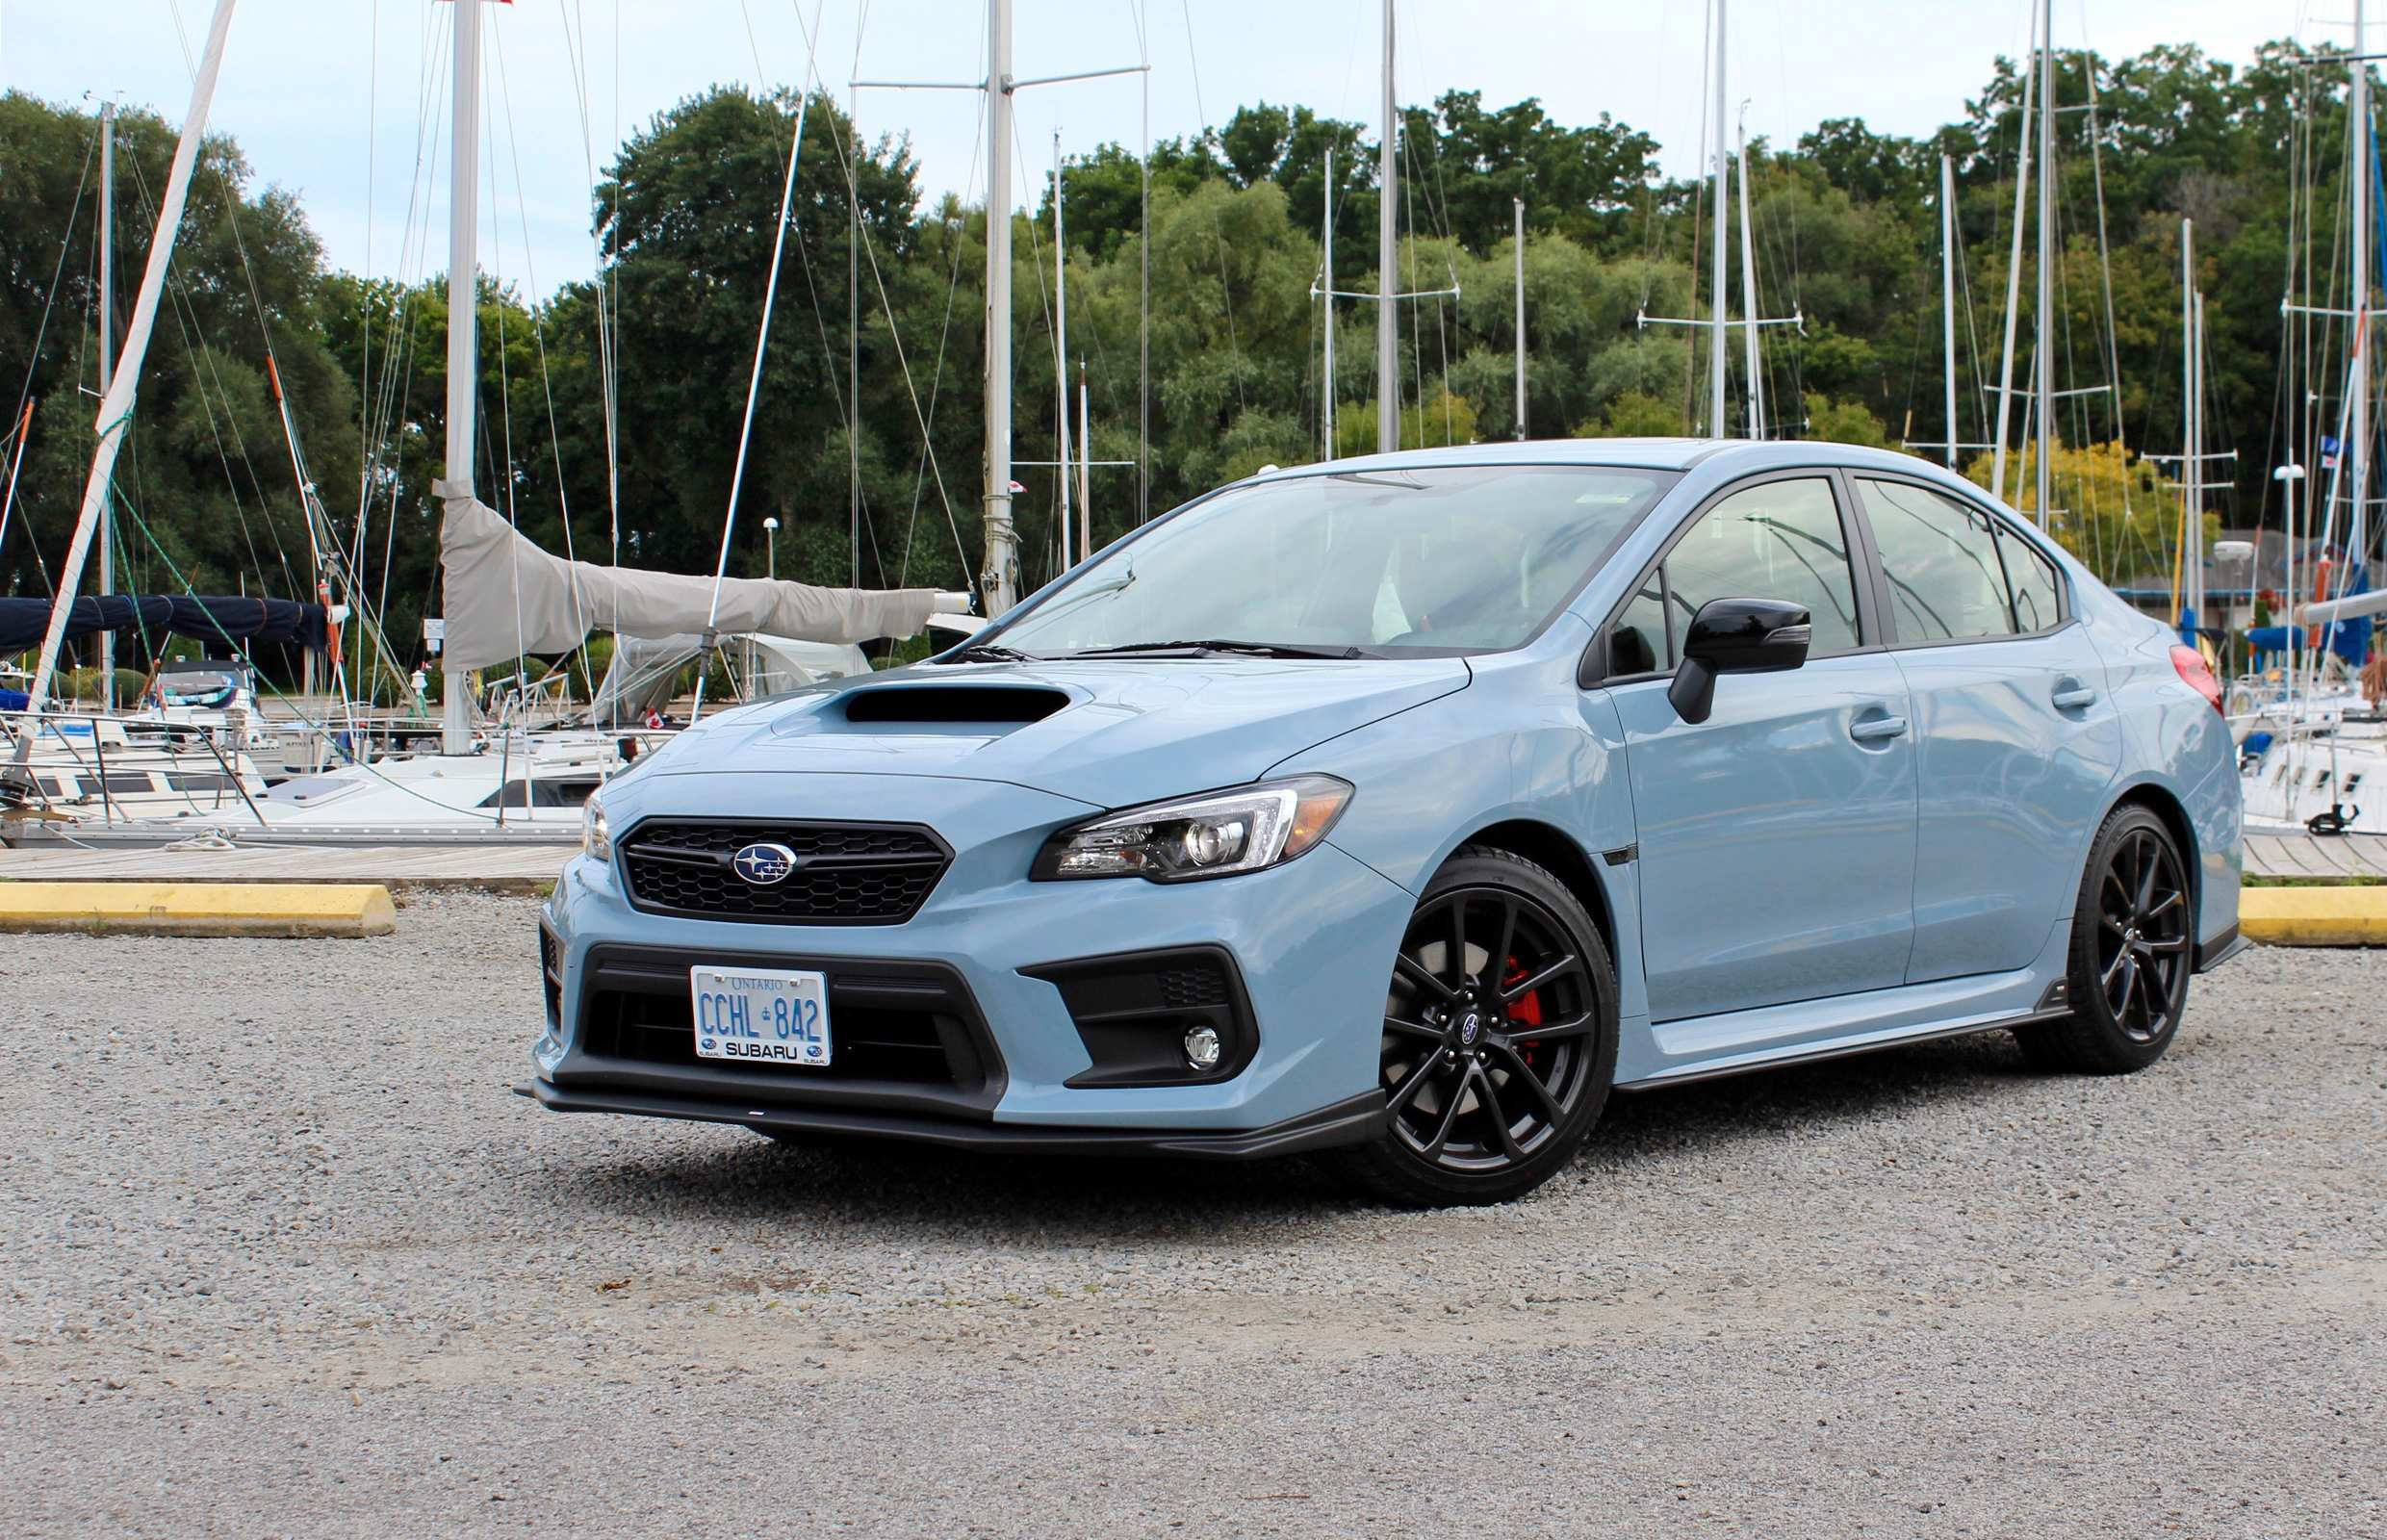 52 The Best 2019 Subaru Sti Price Specs And Review